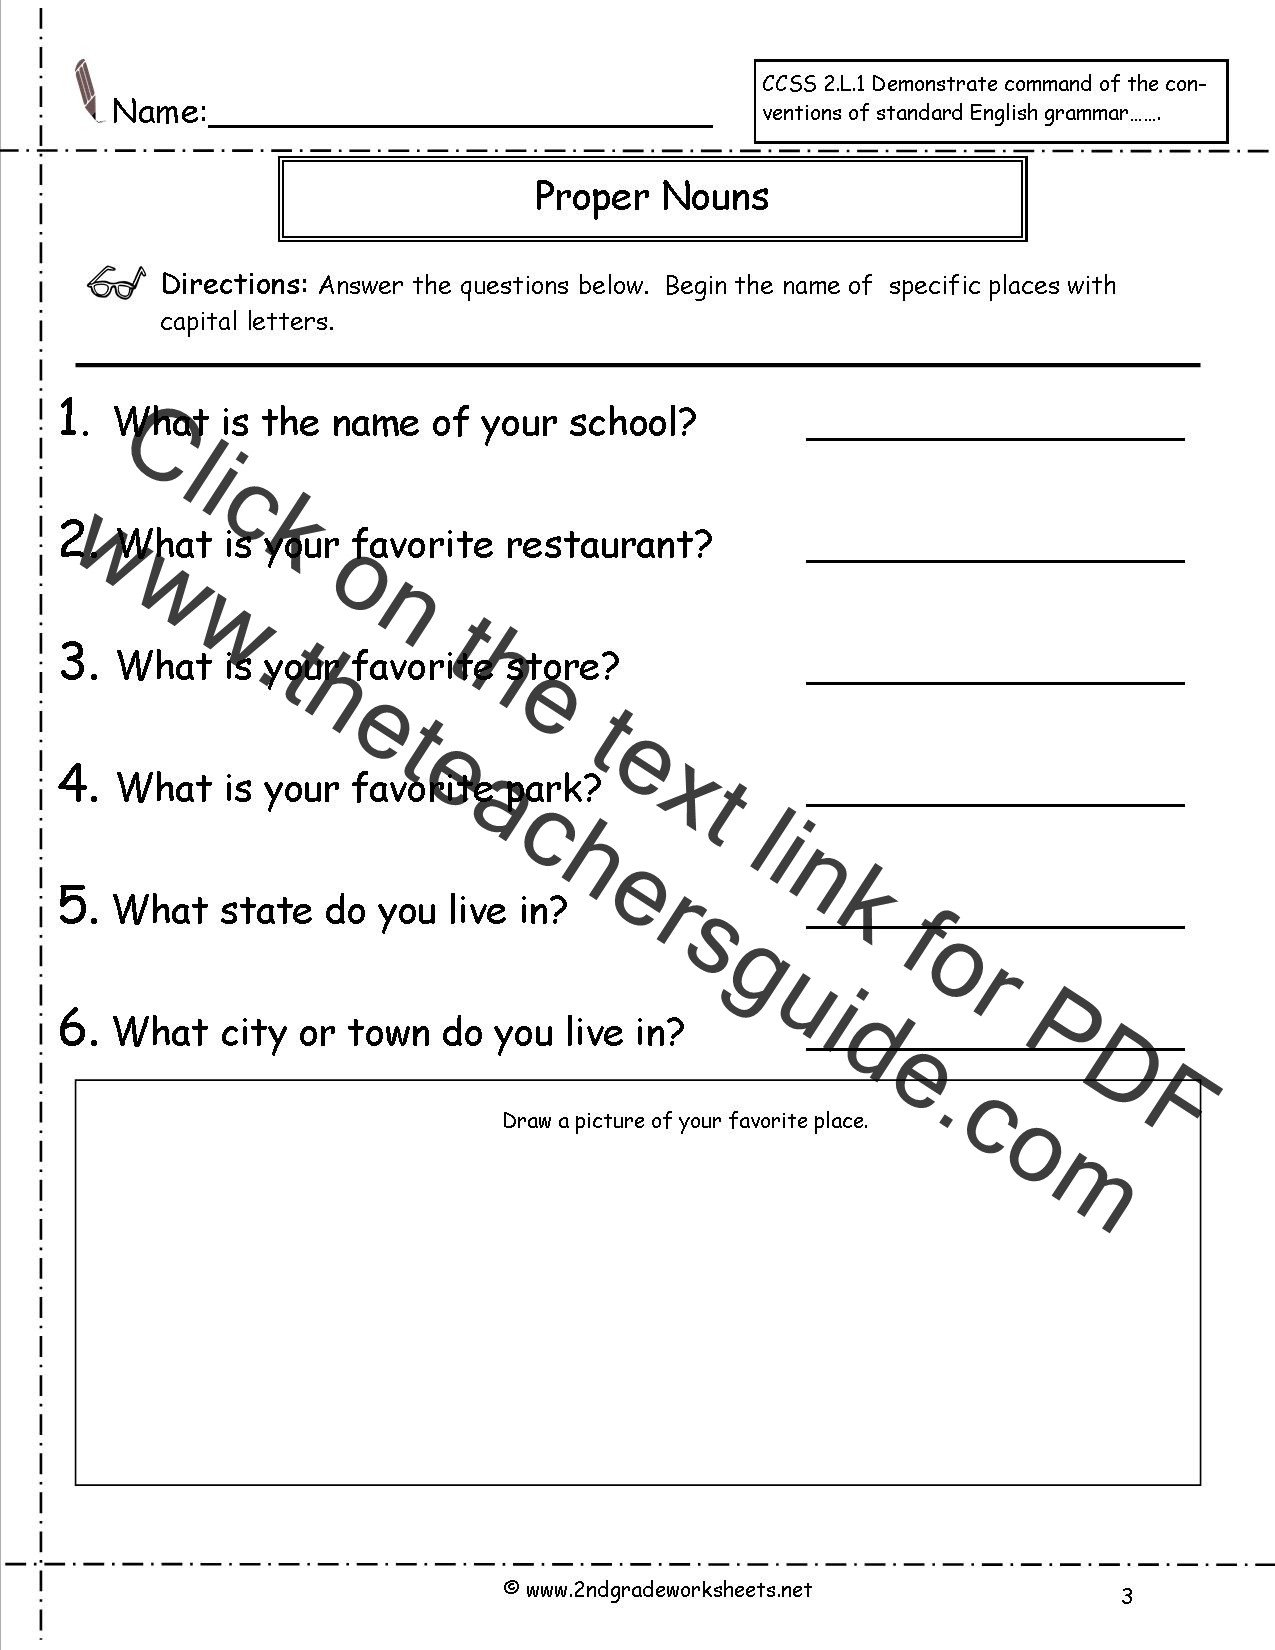 2nd Grade Proper Nouns Worksheet Mon and Proper Nouns Worksheet